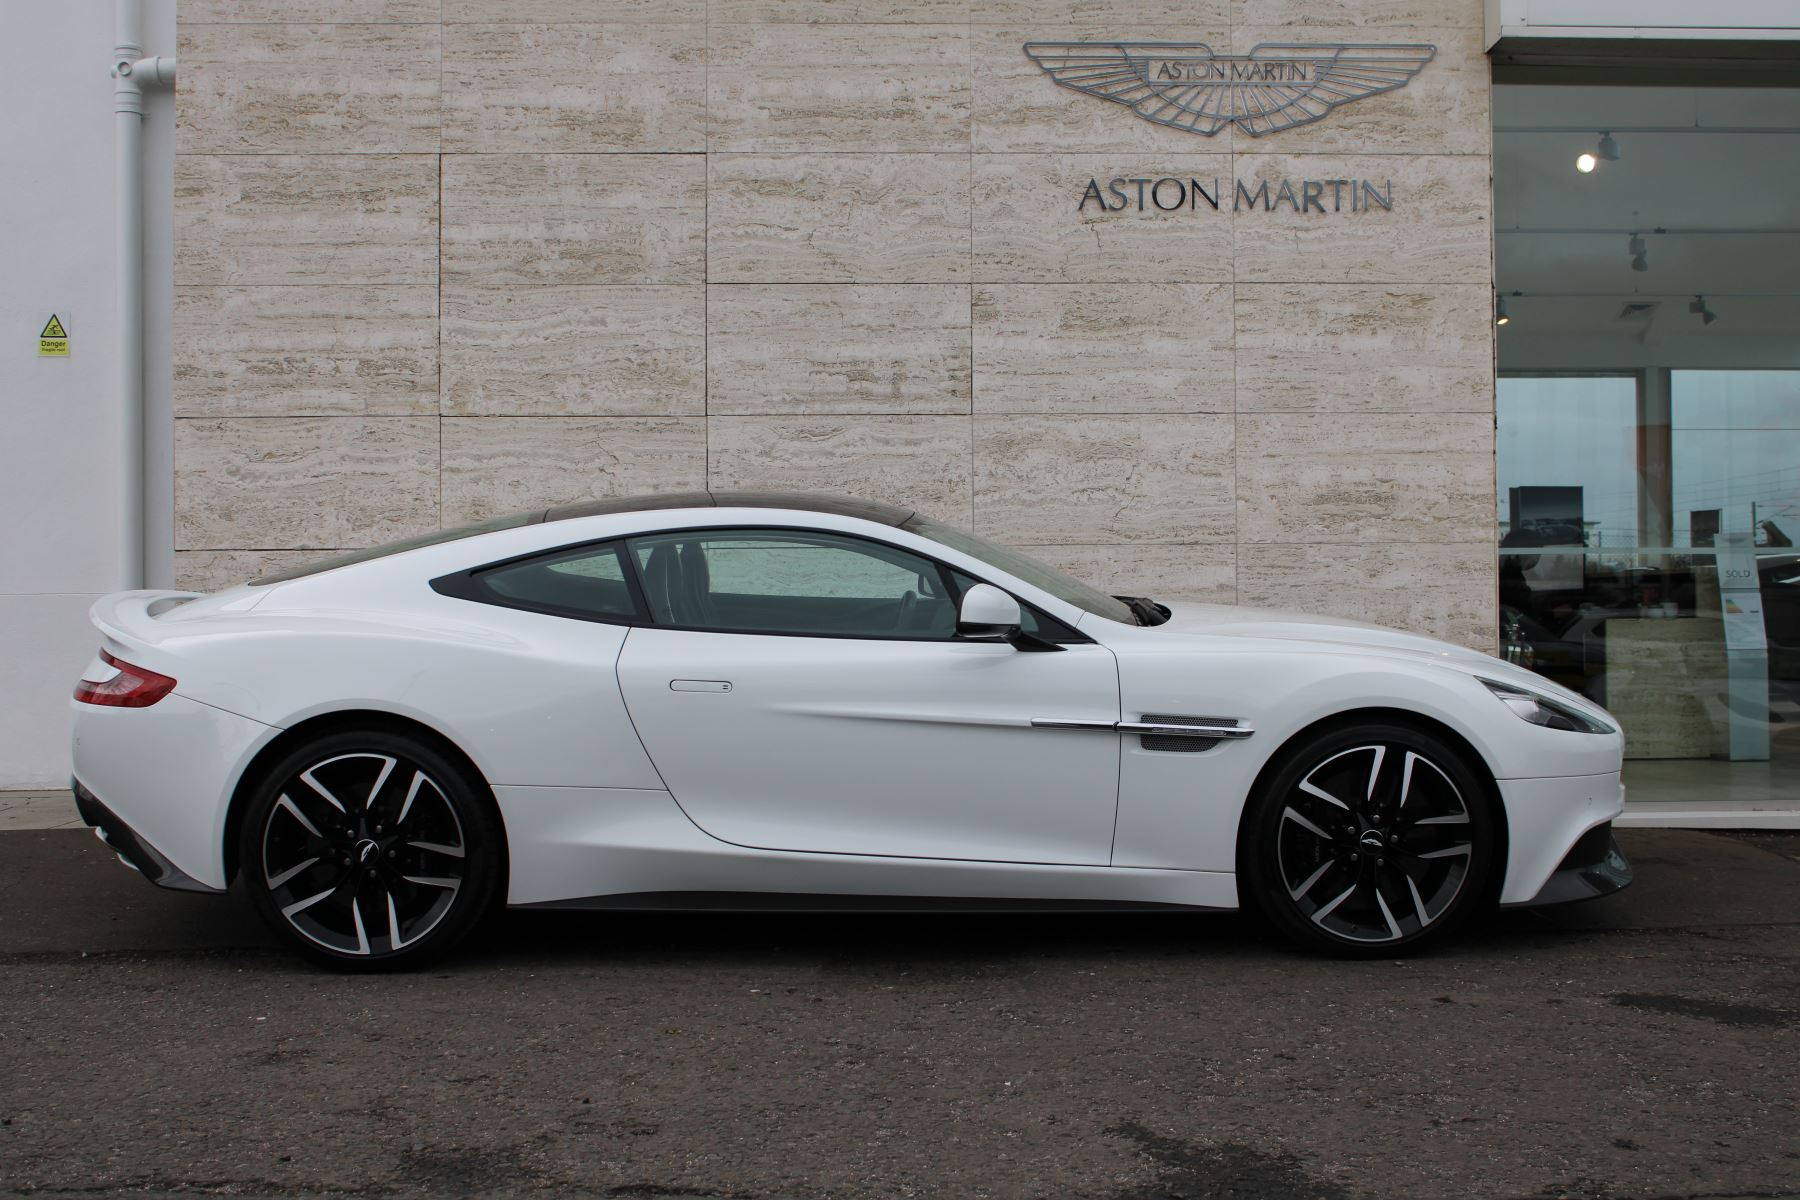 Aston Martin Vanquish V12 [568] 2+2 2dr Touchtronic image 2